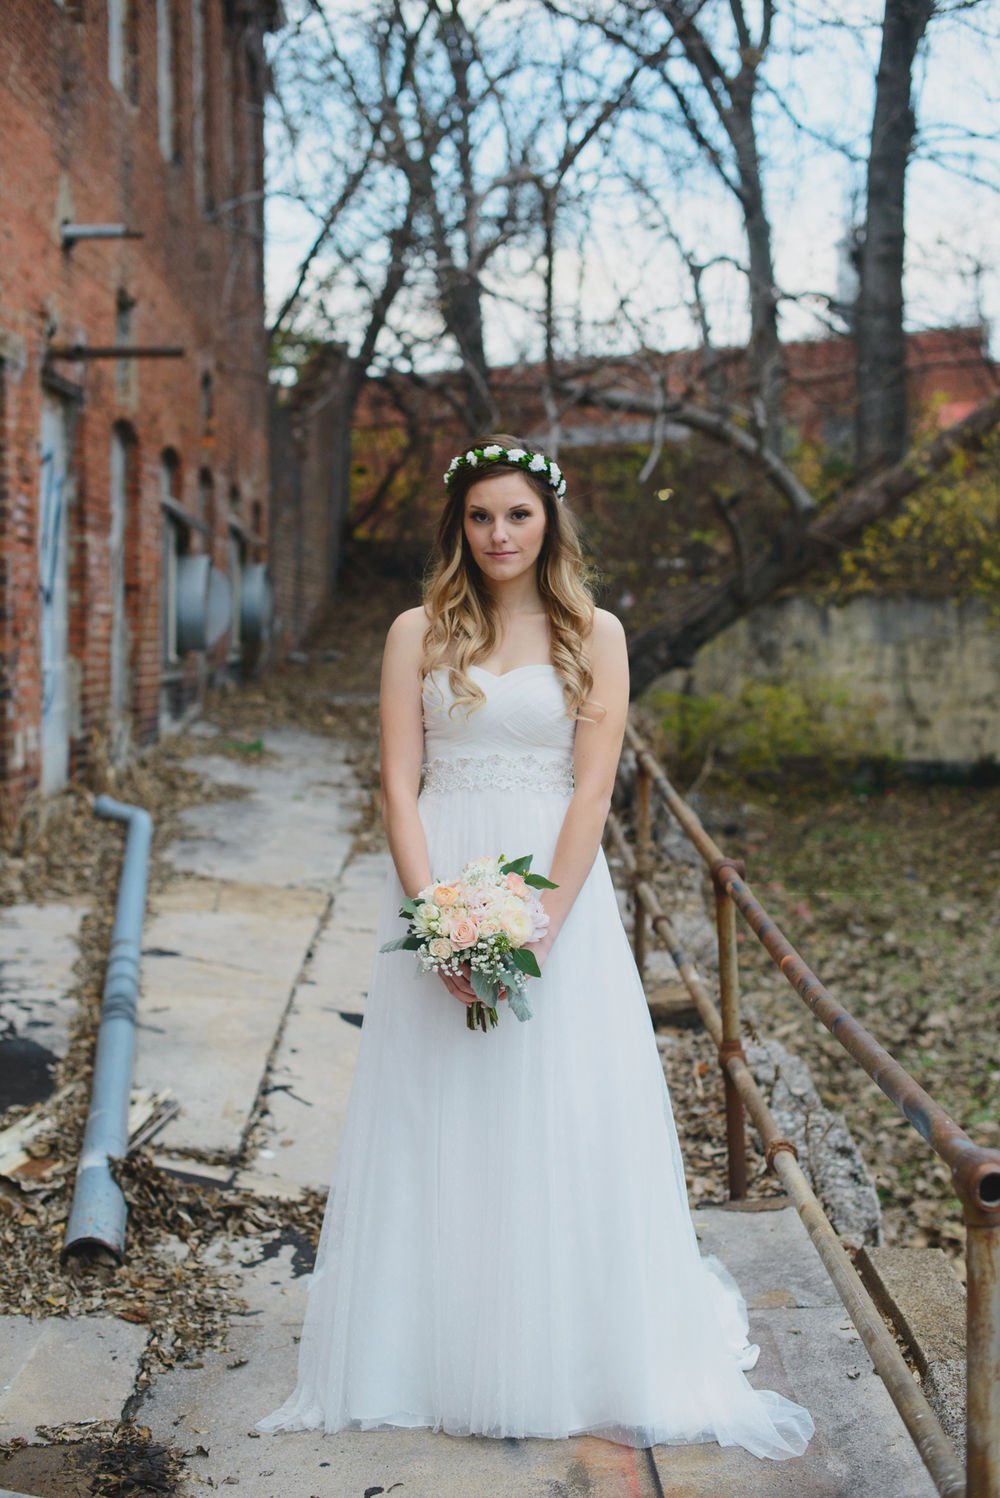 KimberlyManning_Wedding_Faves092.jpg